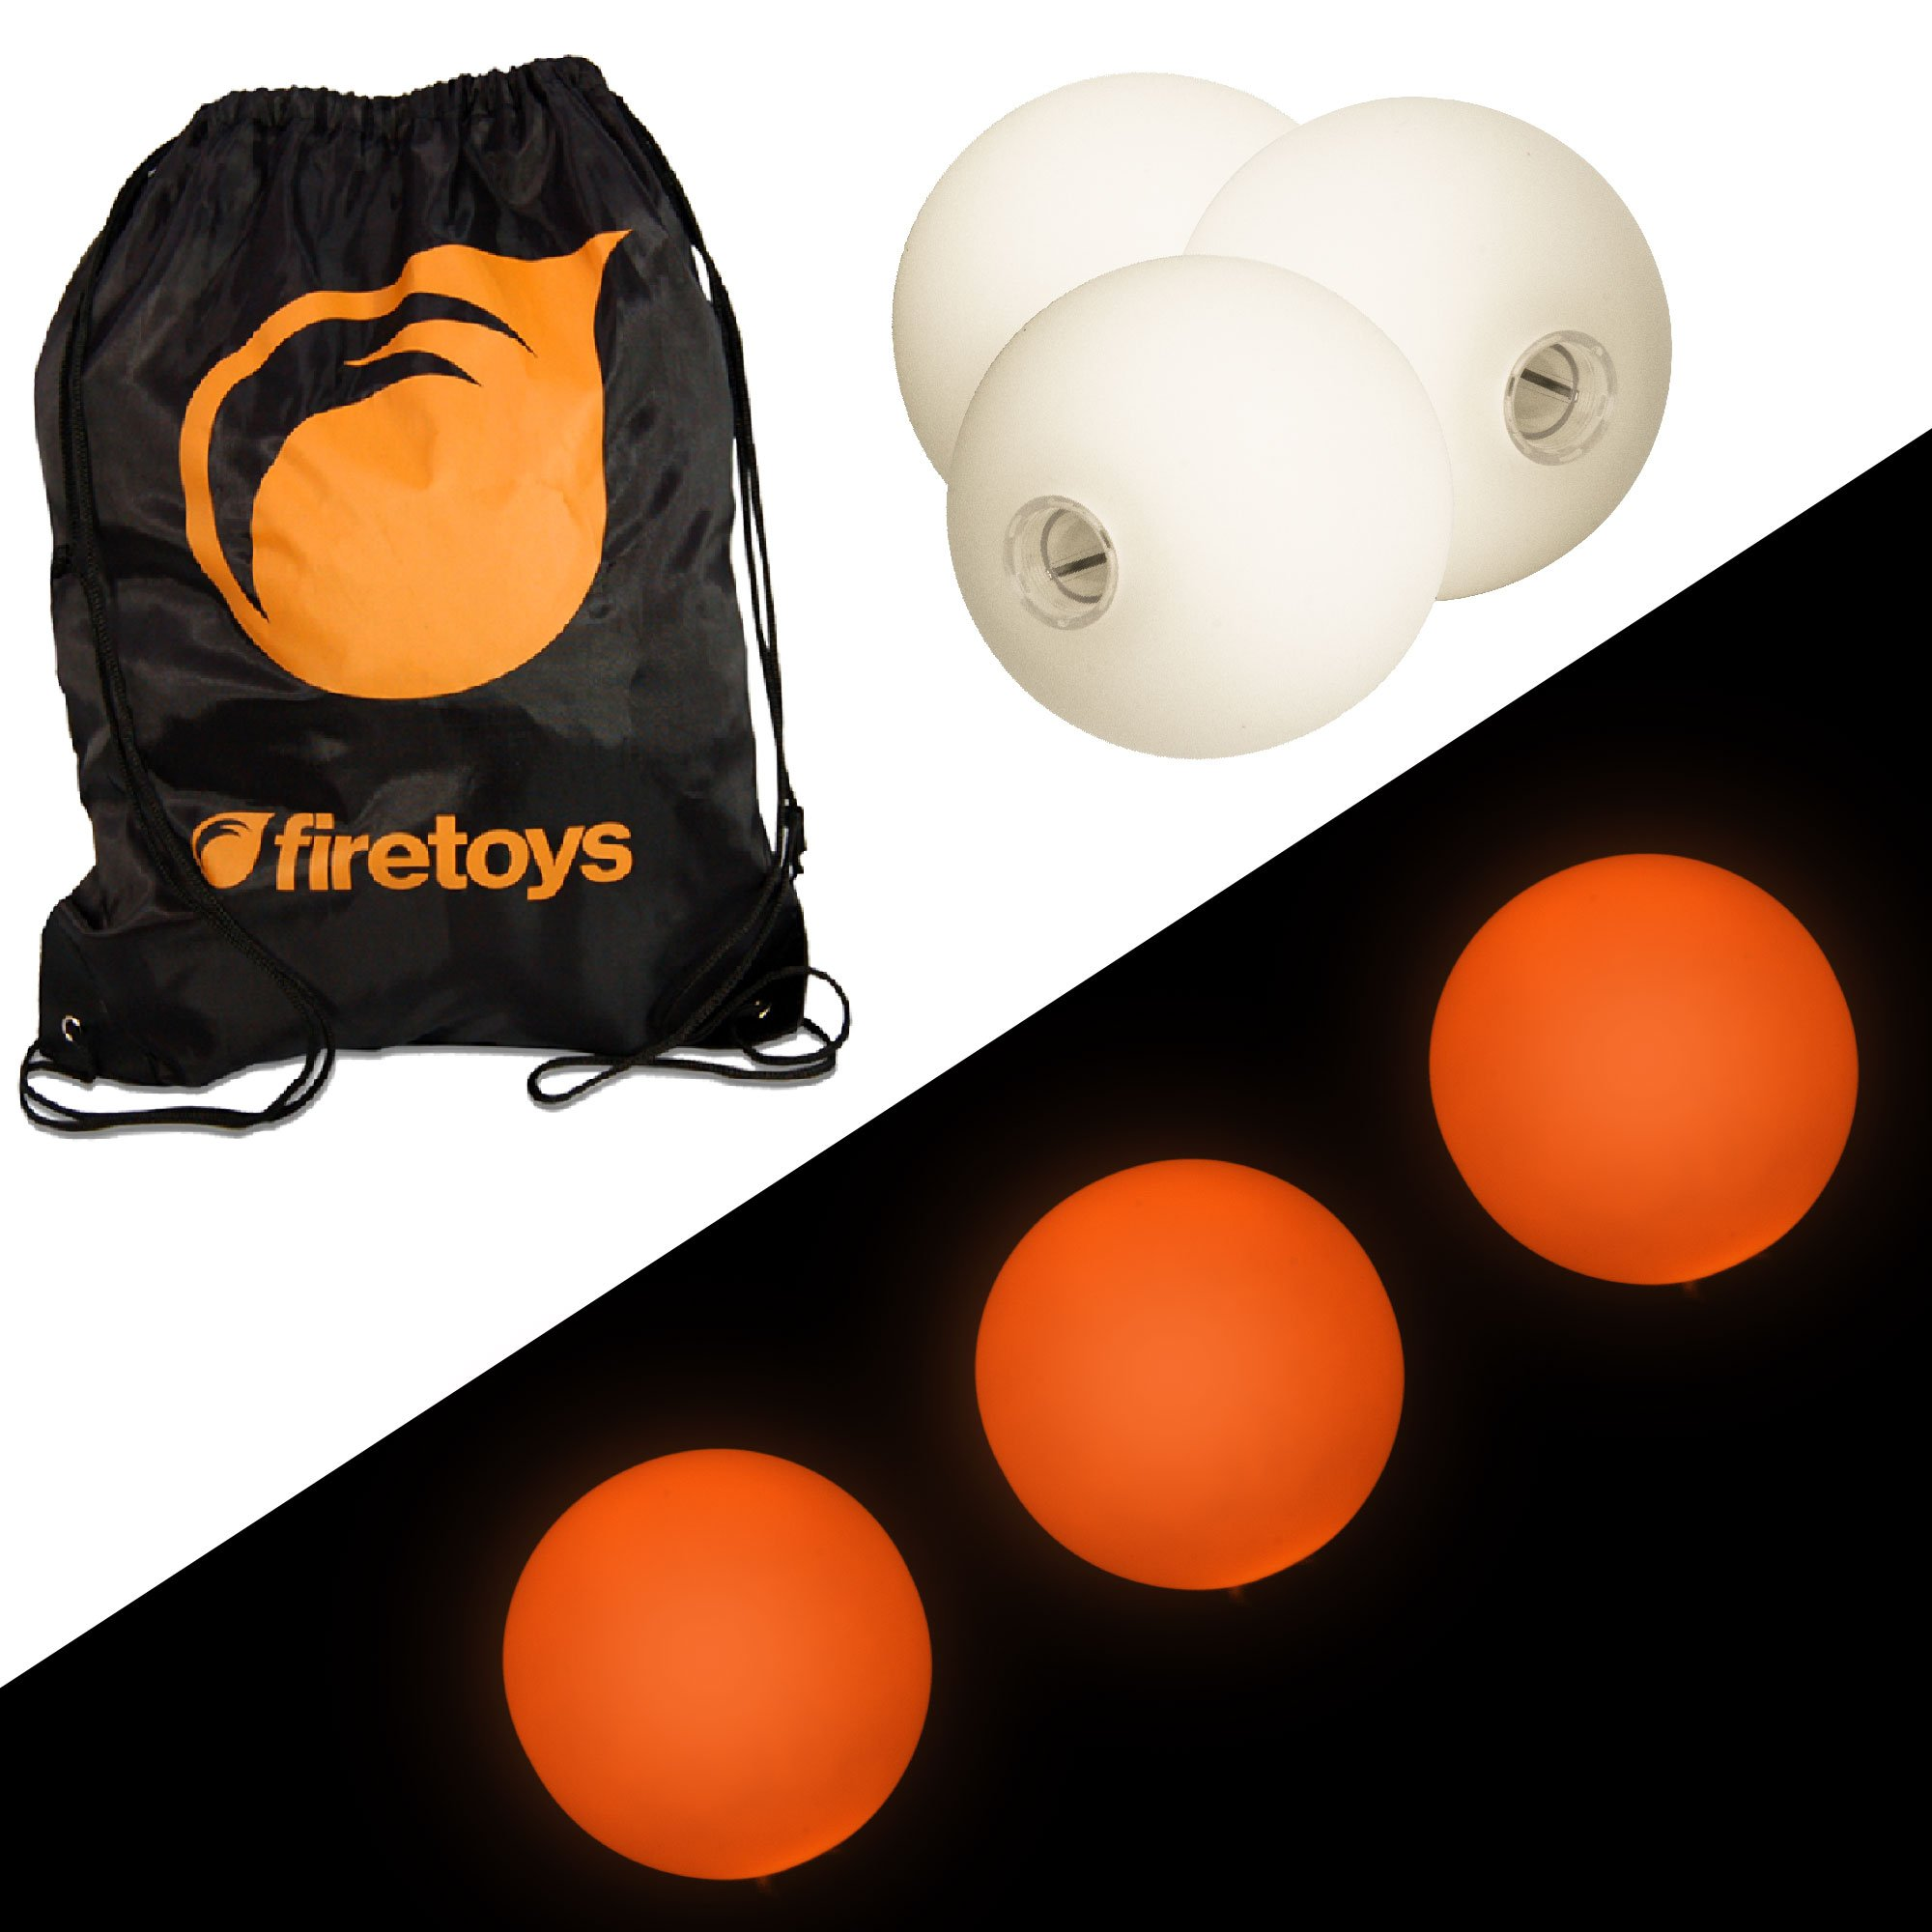 Glow Juggling Ball Set - 3X Orange LED Juggling Balls & Firetoys Bag by Firetoys